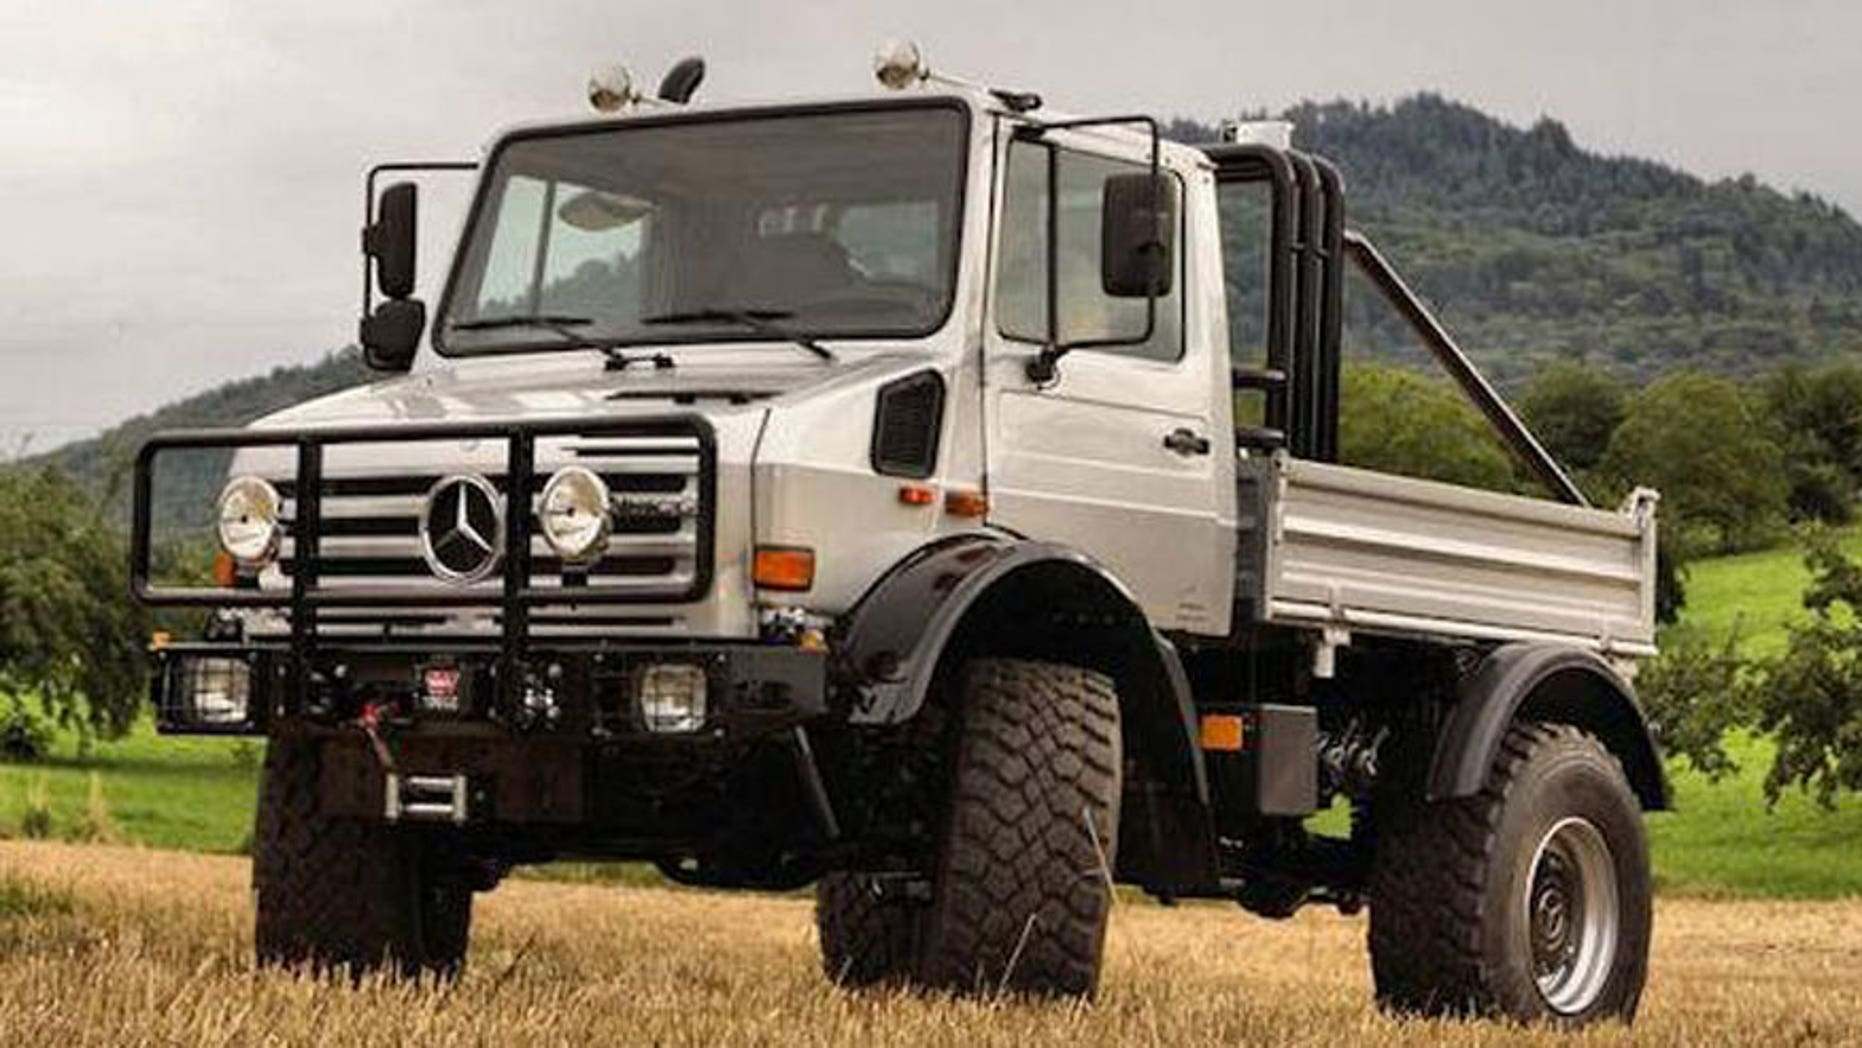 Arnold Schwarzenegger's incredible Mercedes Unimog for sale on Ebay